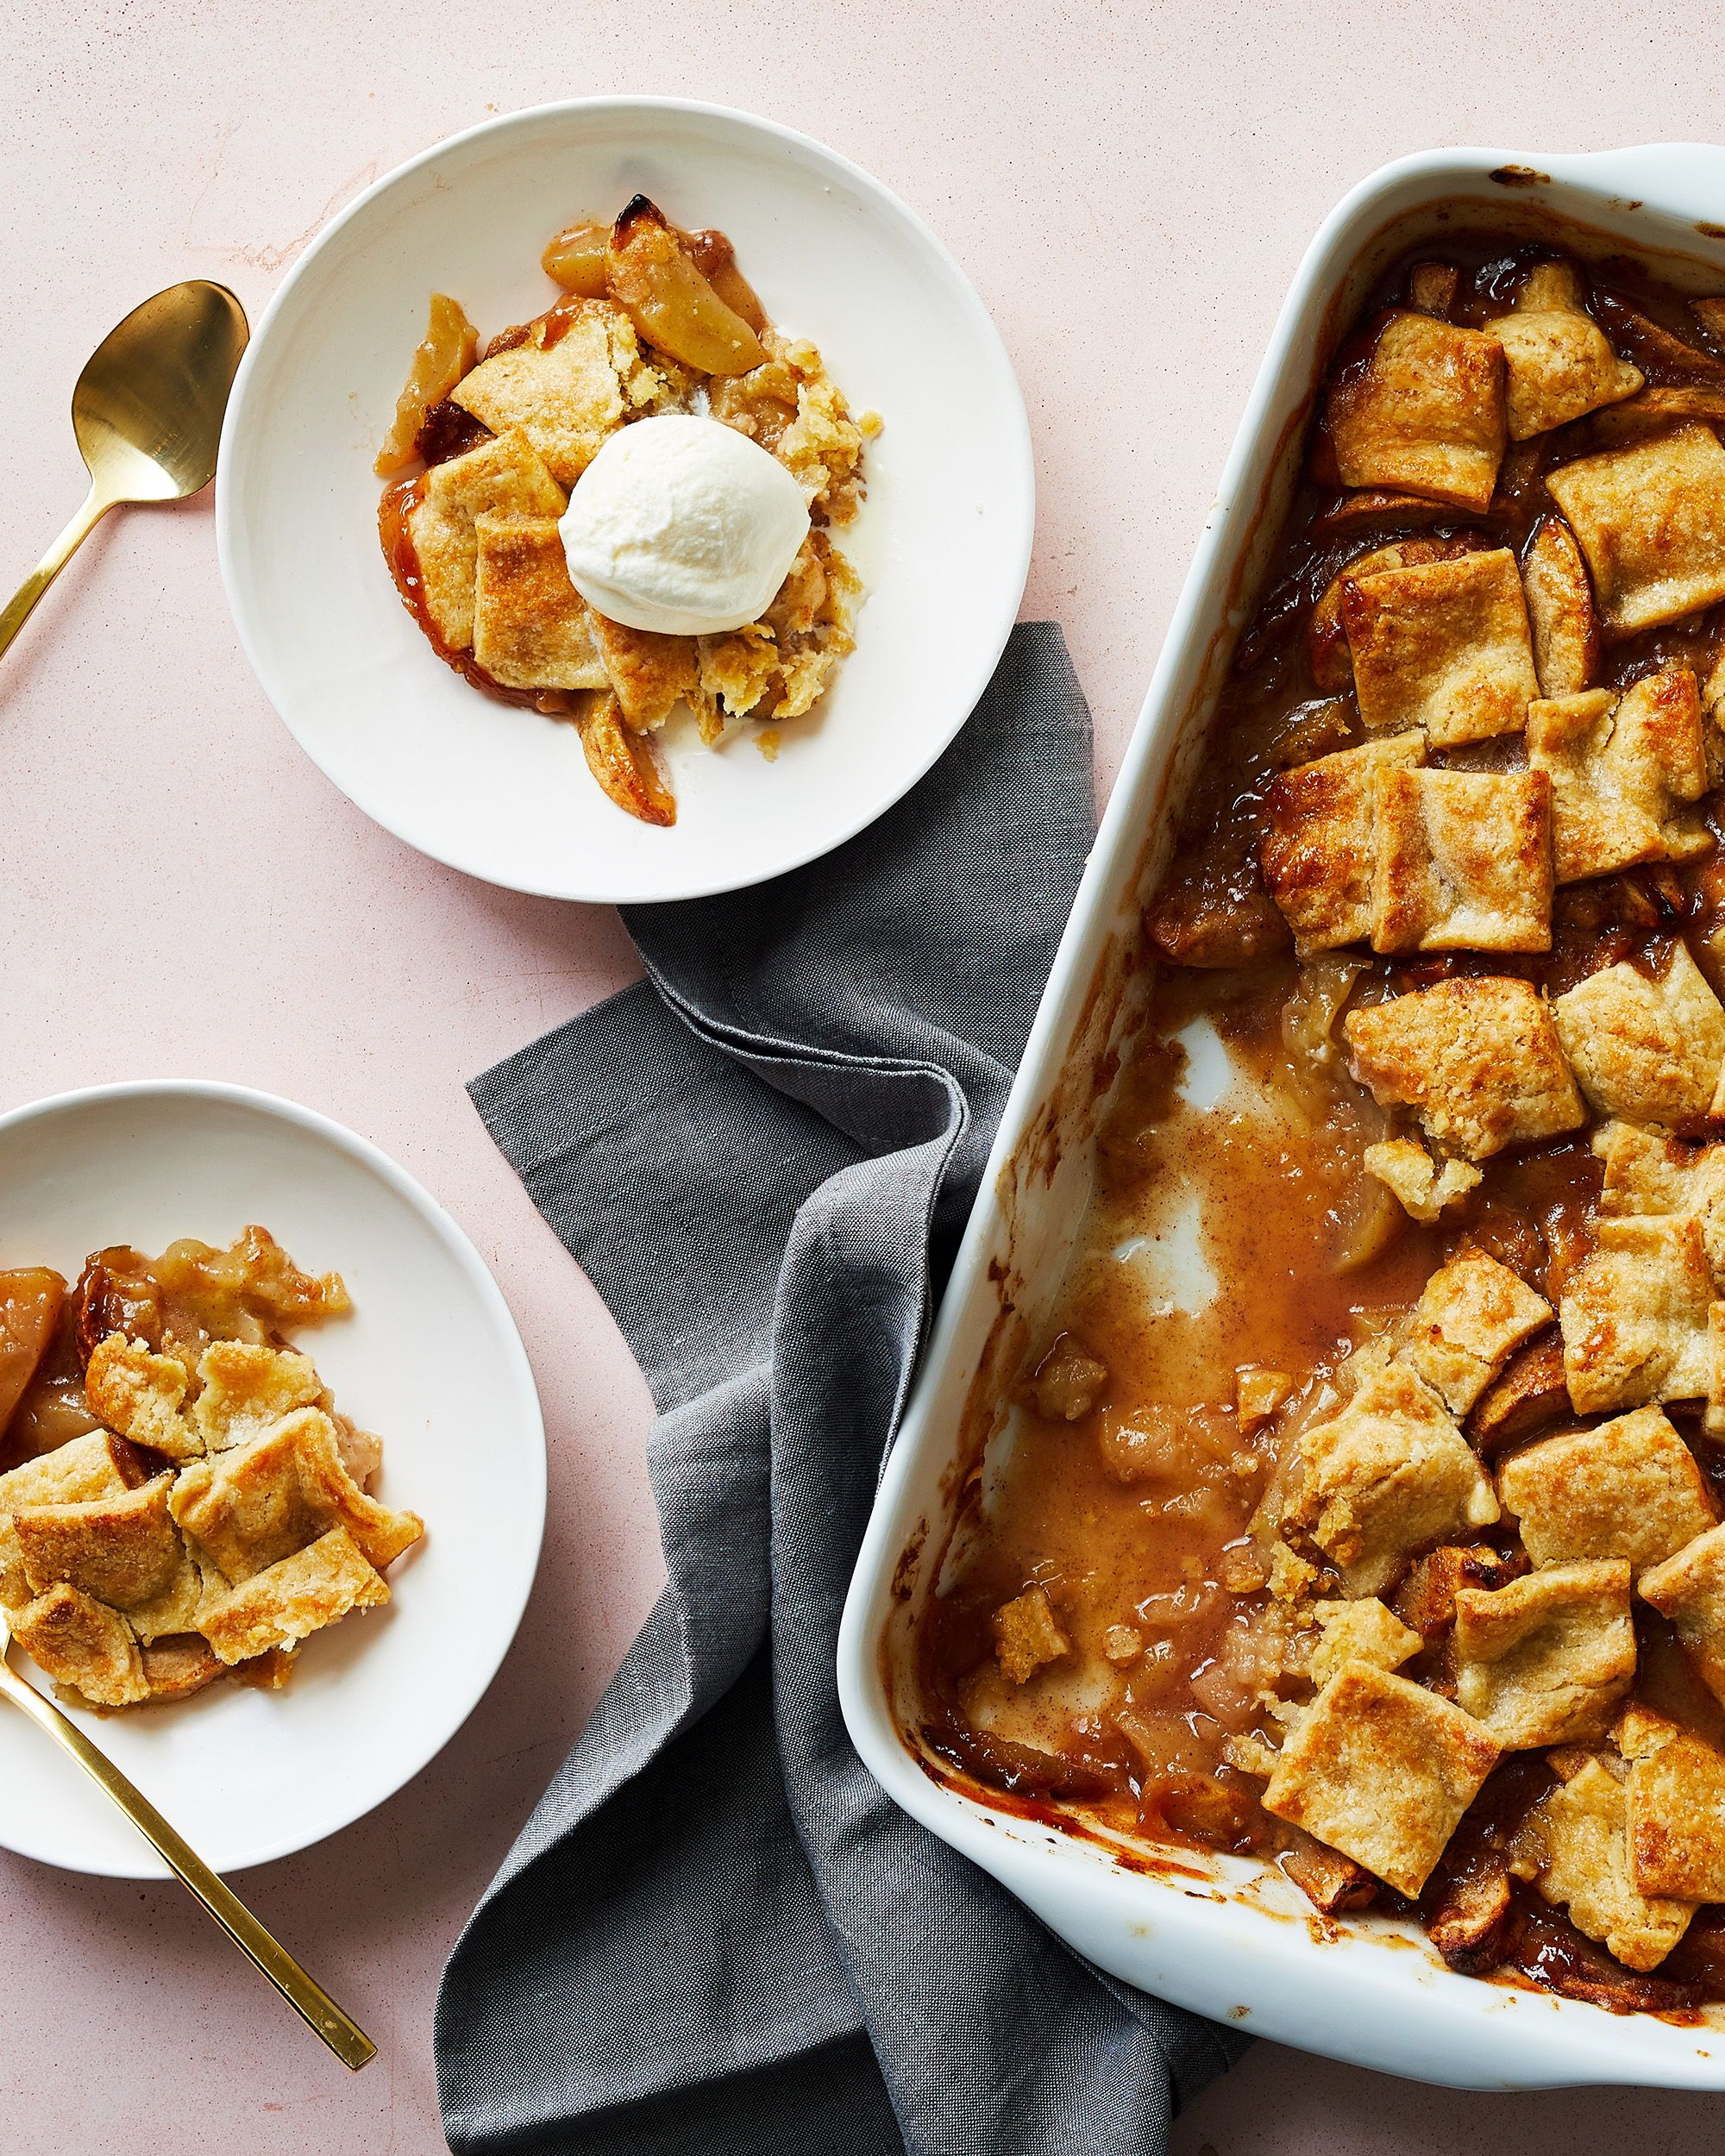 Pin On Baking And Dessert Recipes And Ideas